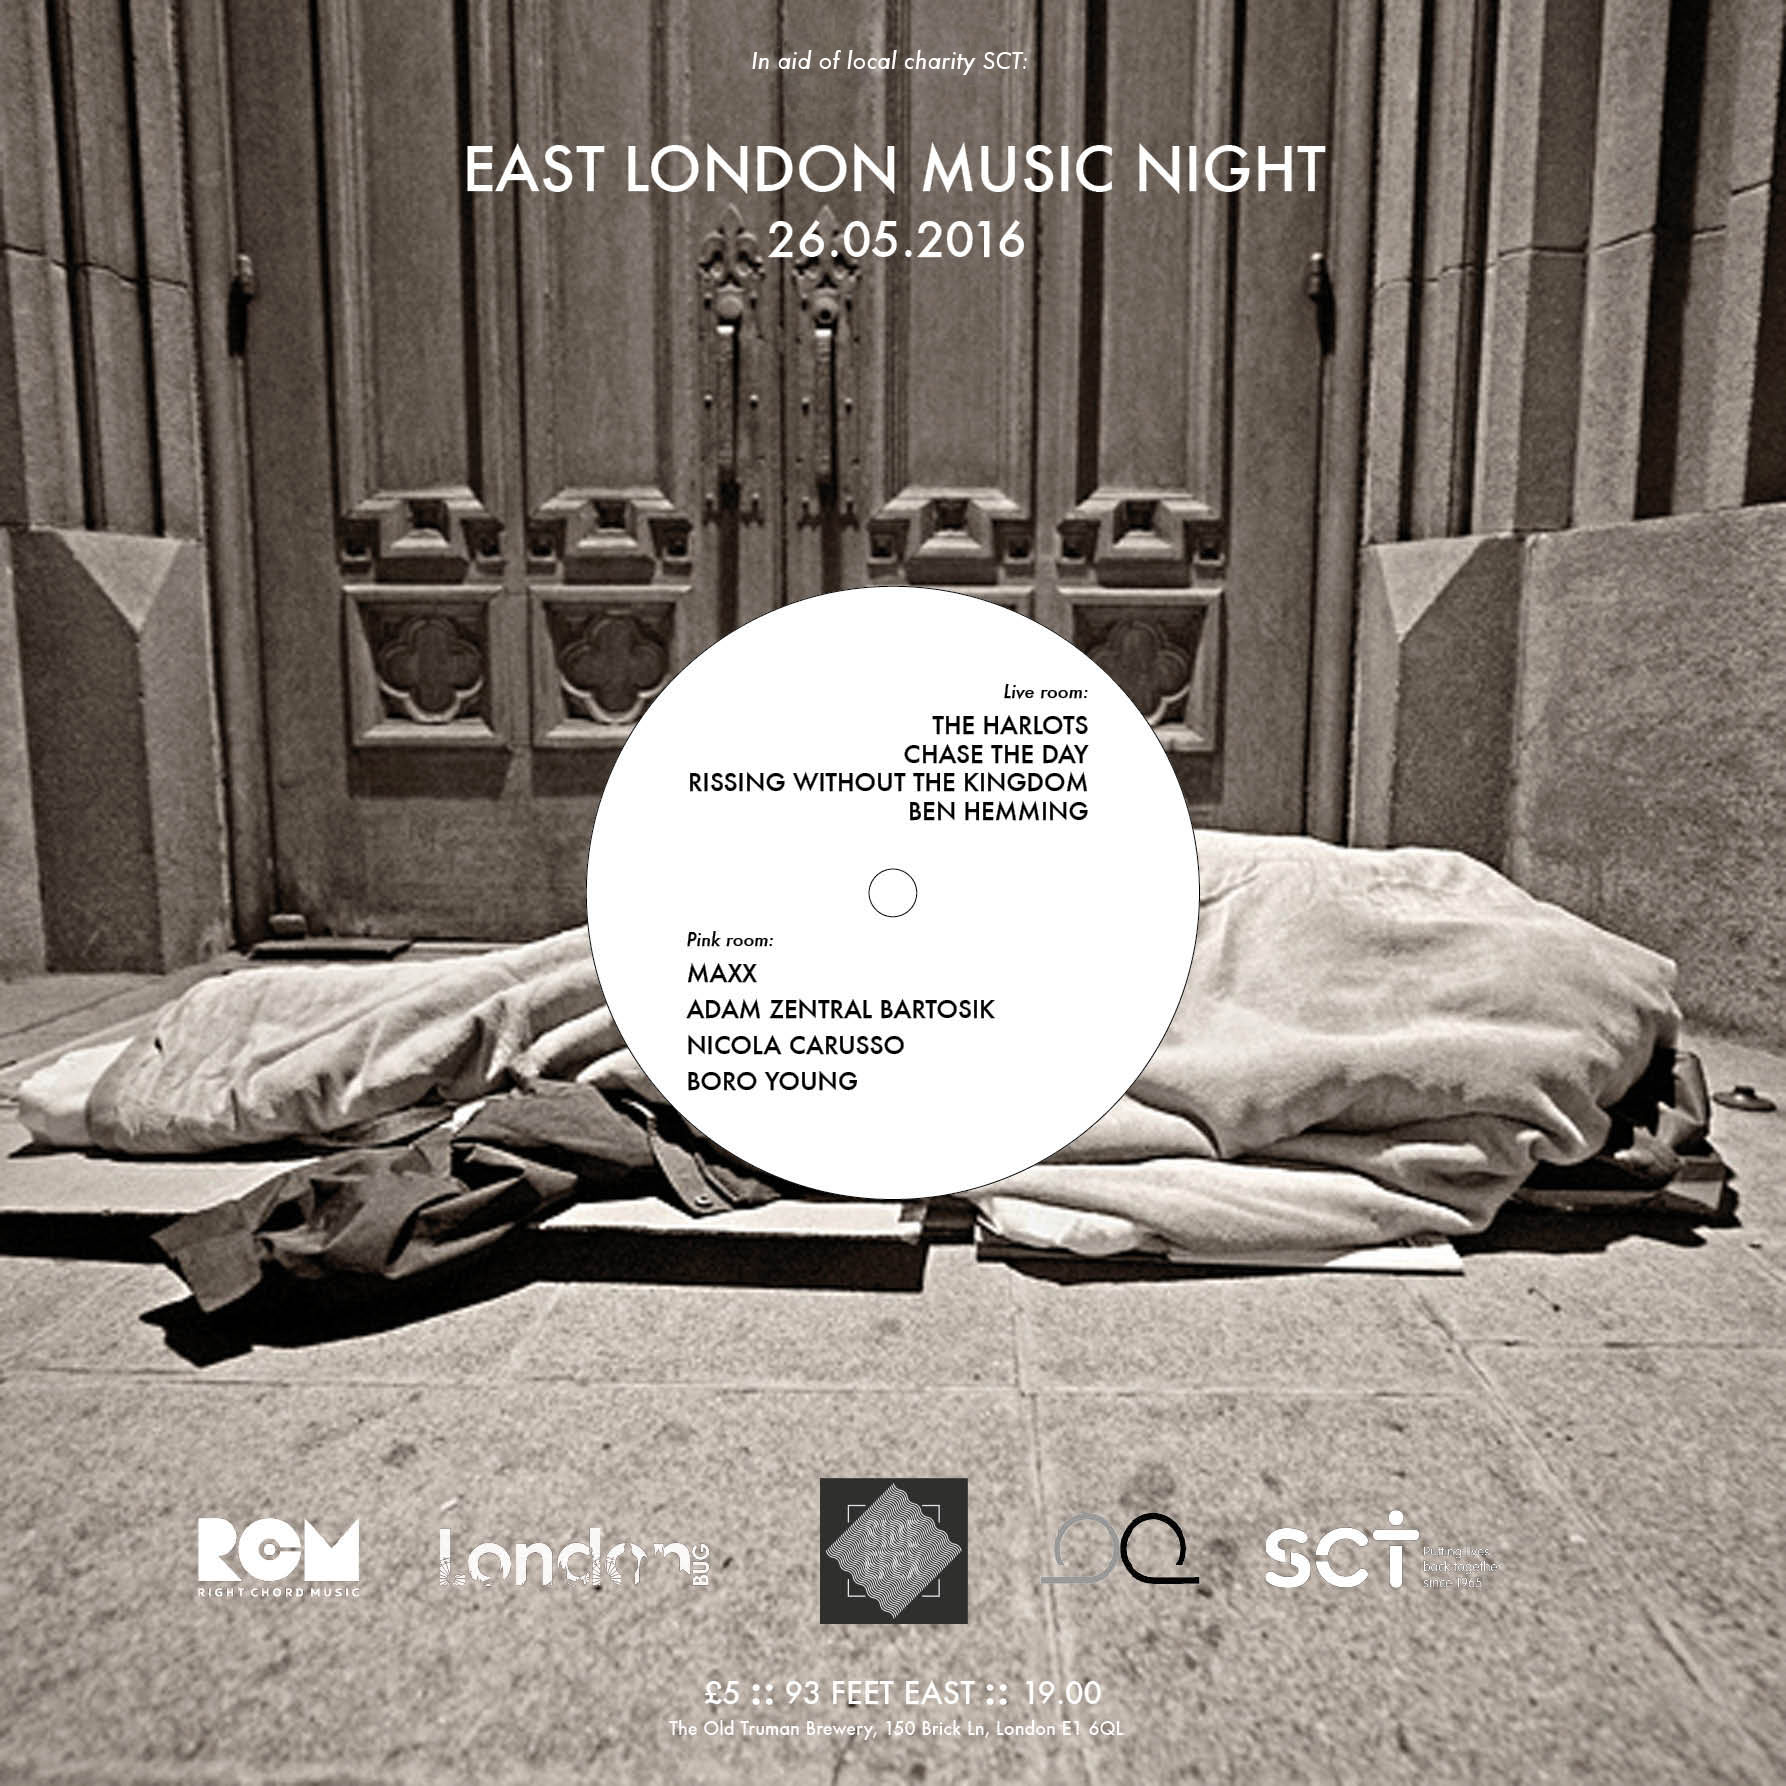 East London Music Night